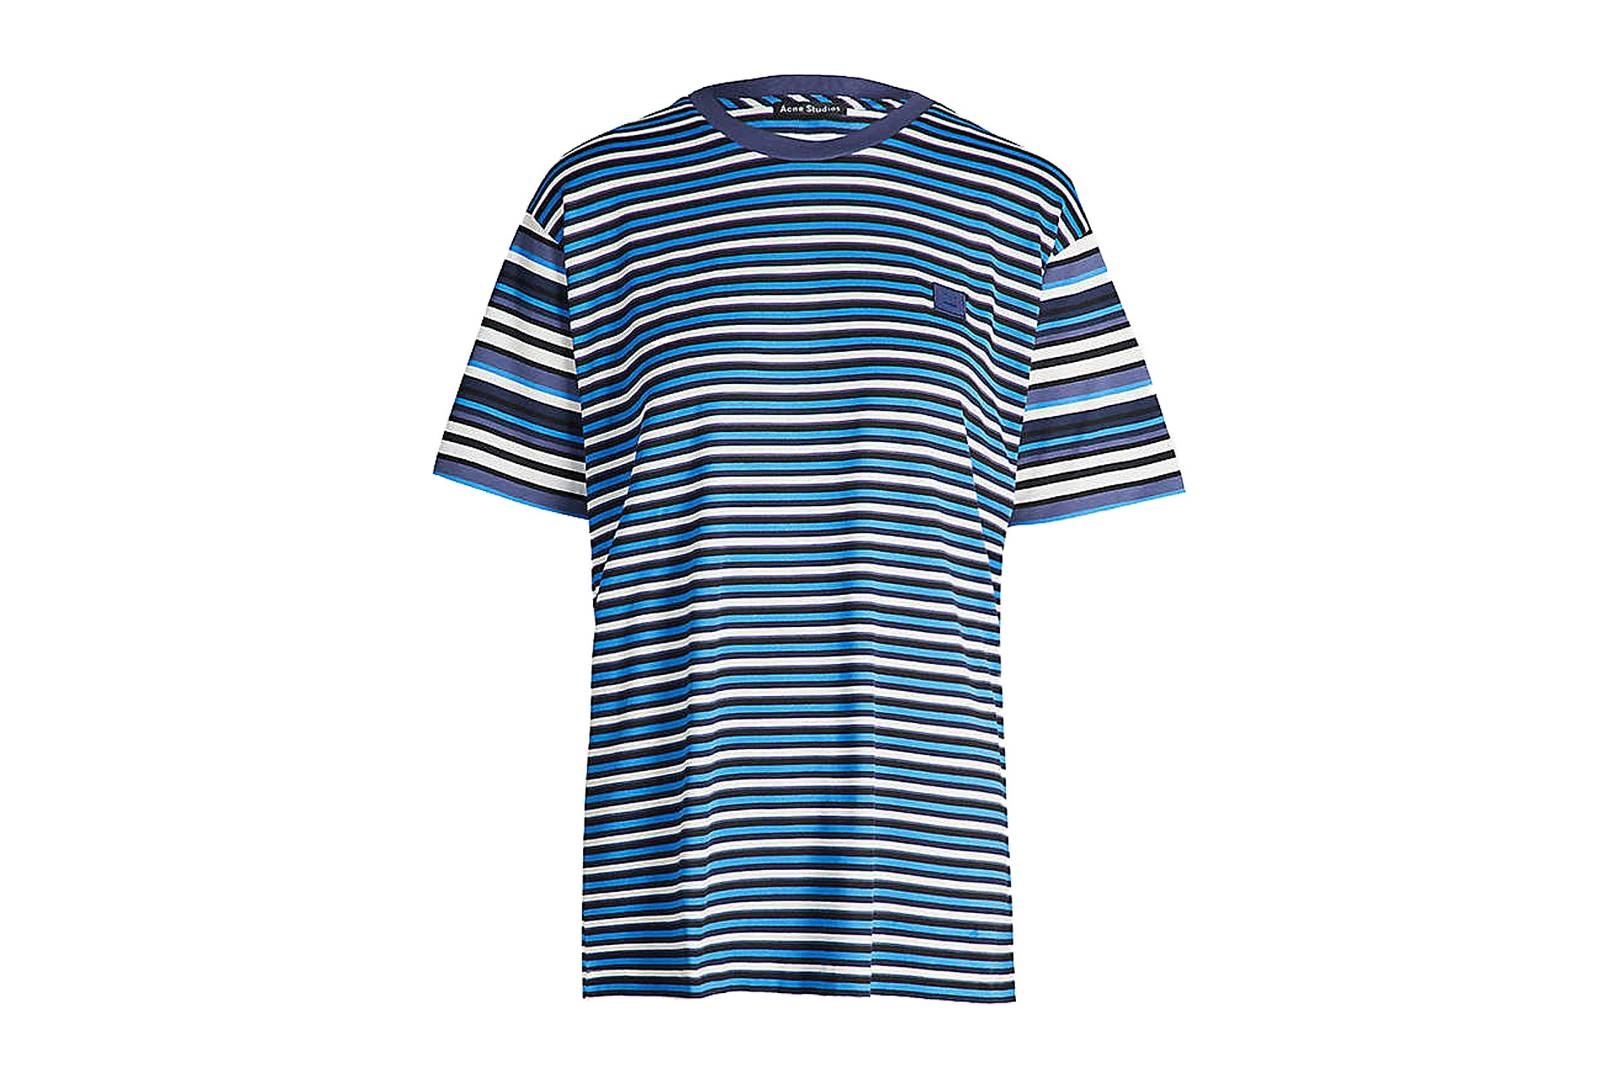 c616dfa2db4 The Best Striped T-Shirts To Wear This Summer | British Vogue